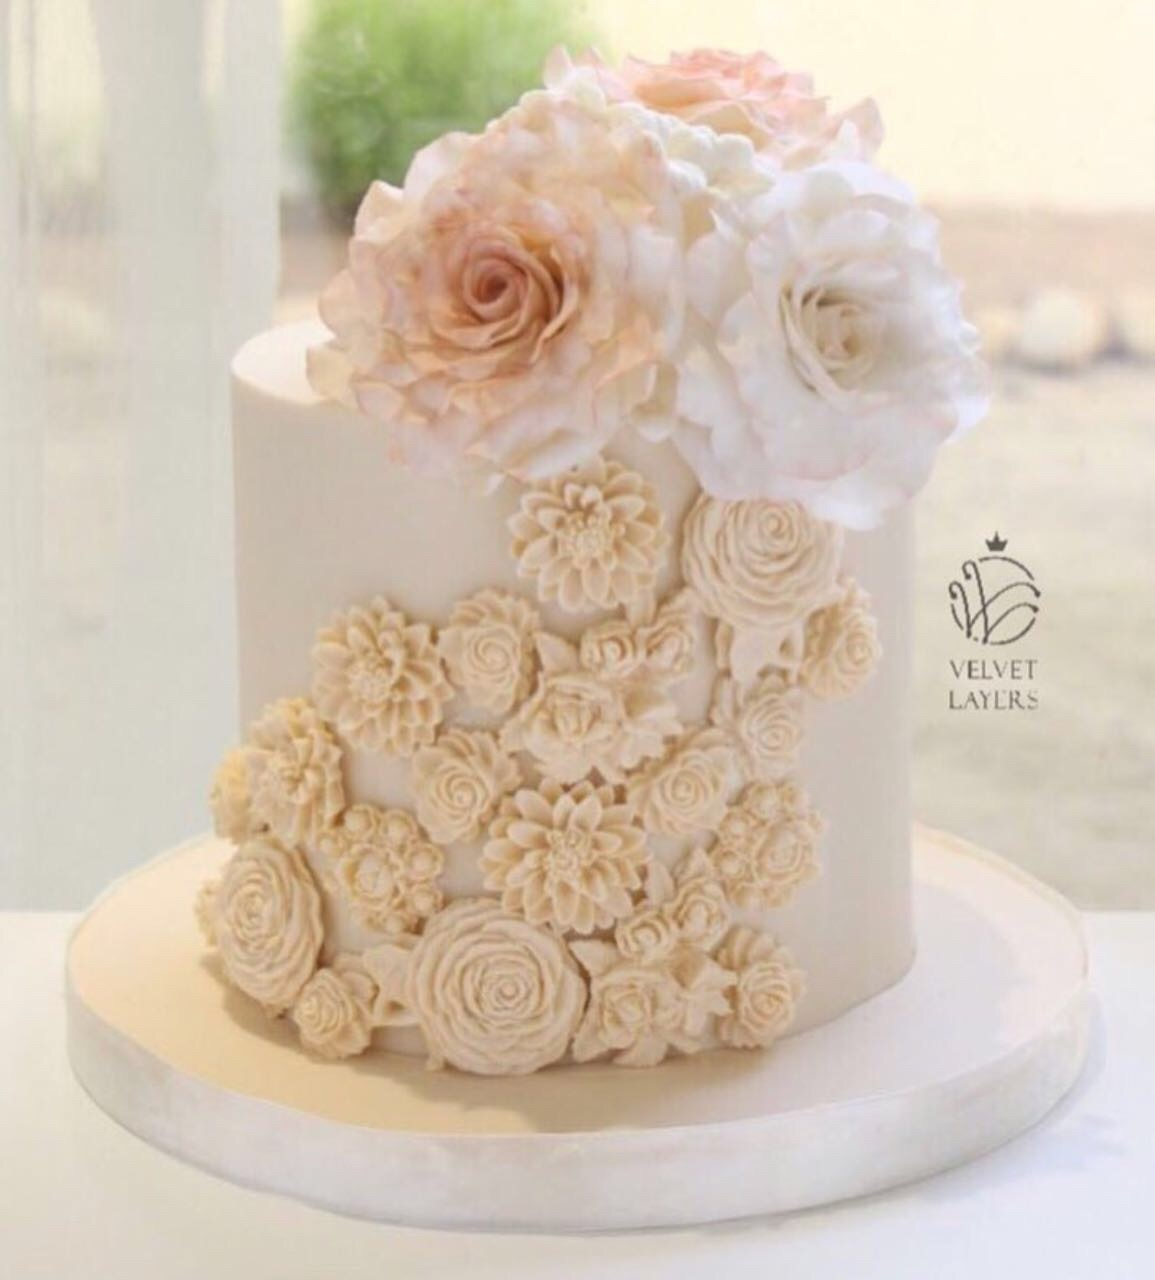 white fondant cake with bas relief texture